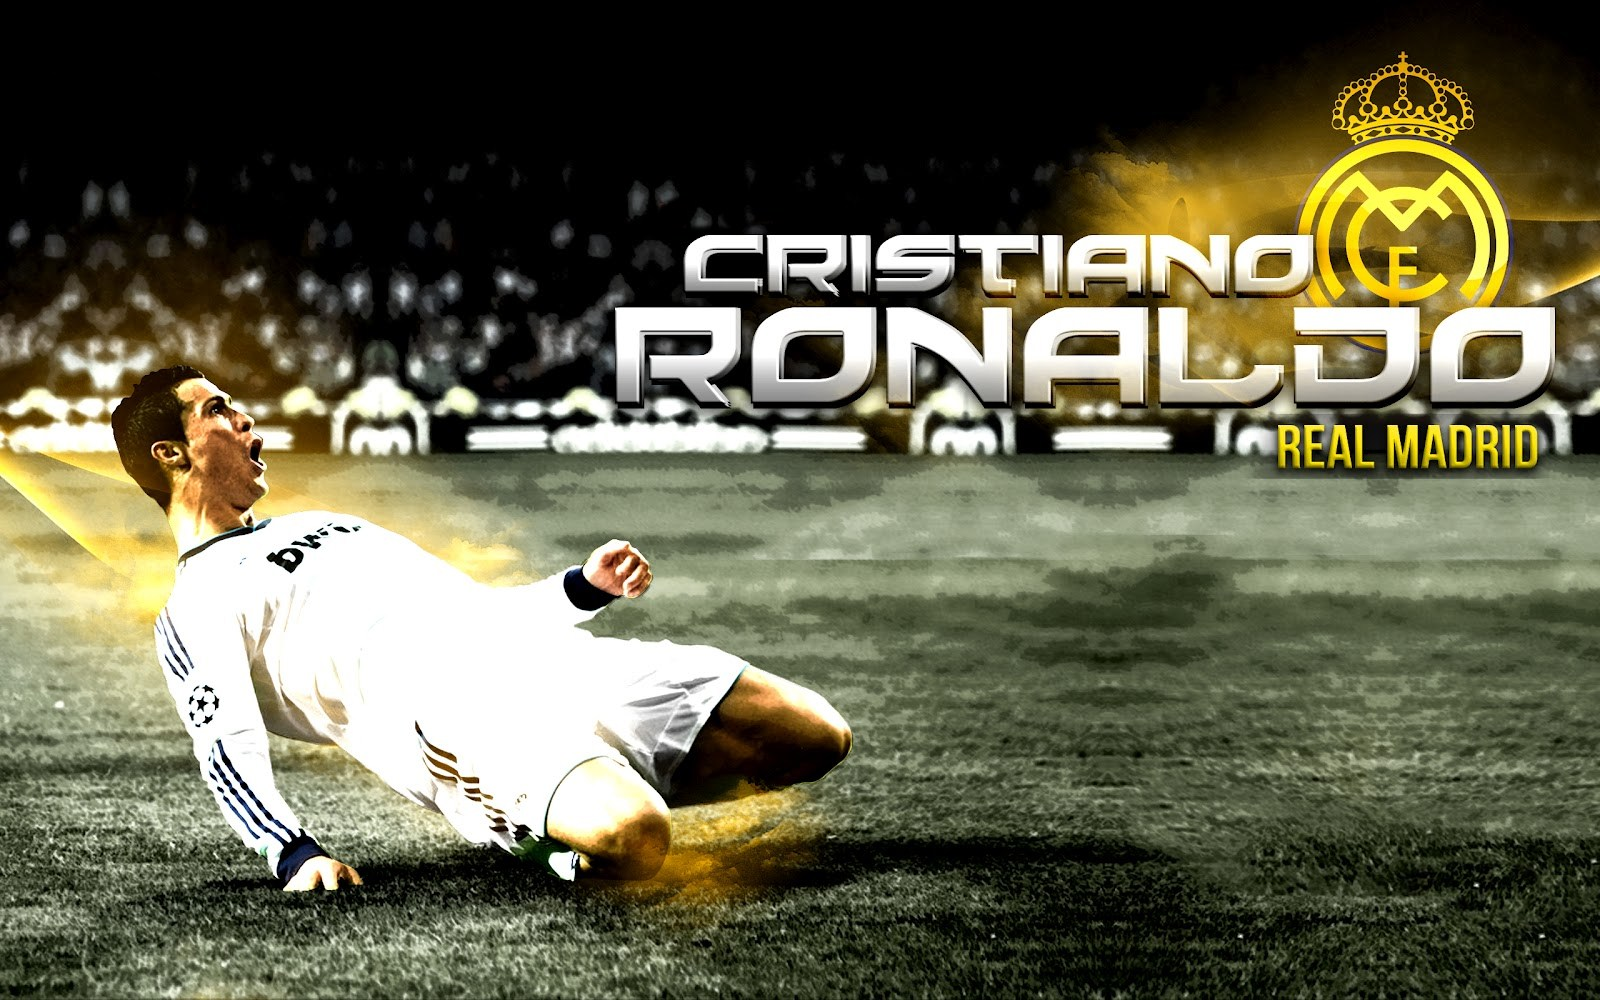 Cristiano Ronaldo Real Madrid New HD Wallpapers 2013-2014